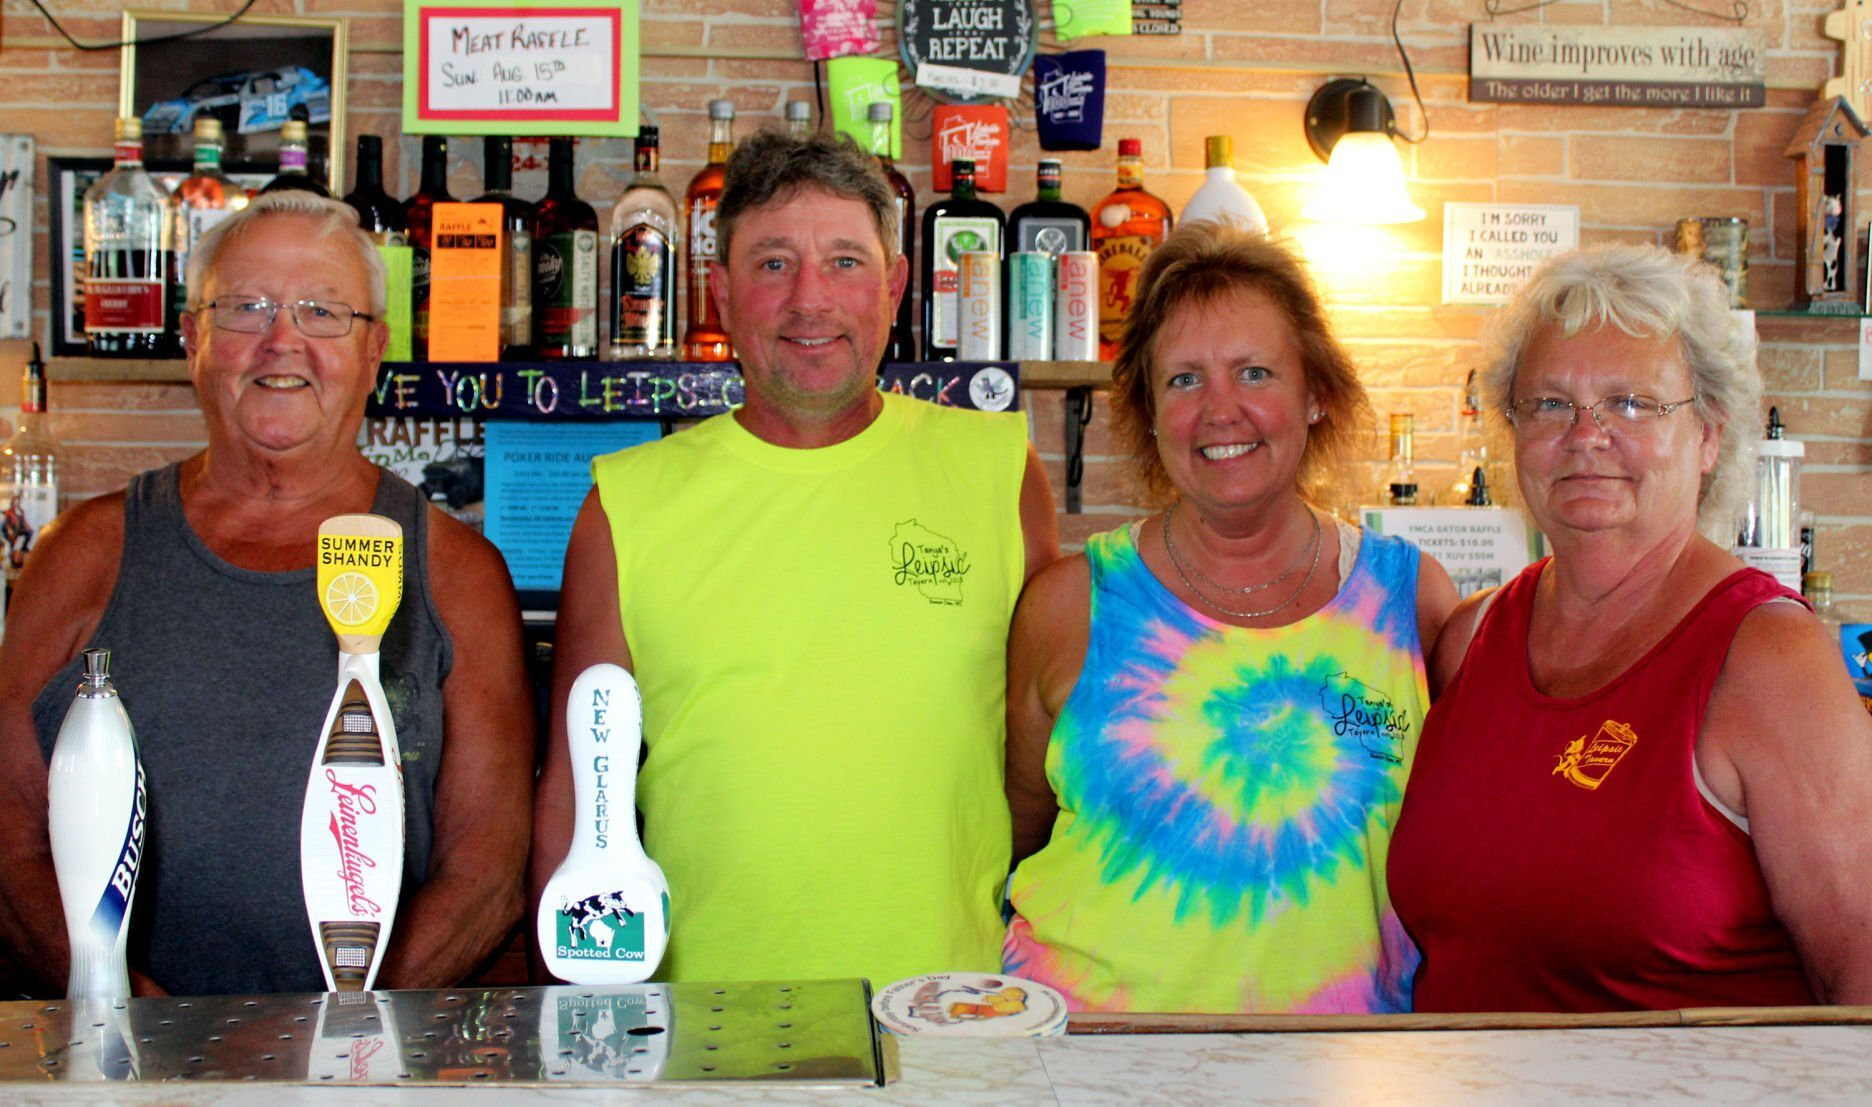 <i>TERRI PEDERSON/Daily Citizen</i><br/>The last two sets of owners of Leipsic Tavern pose behind the bar: Danny Schmitt